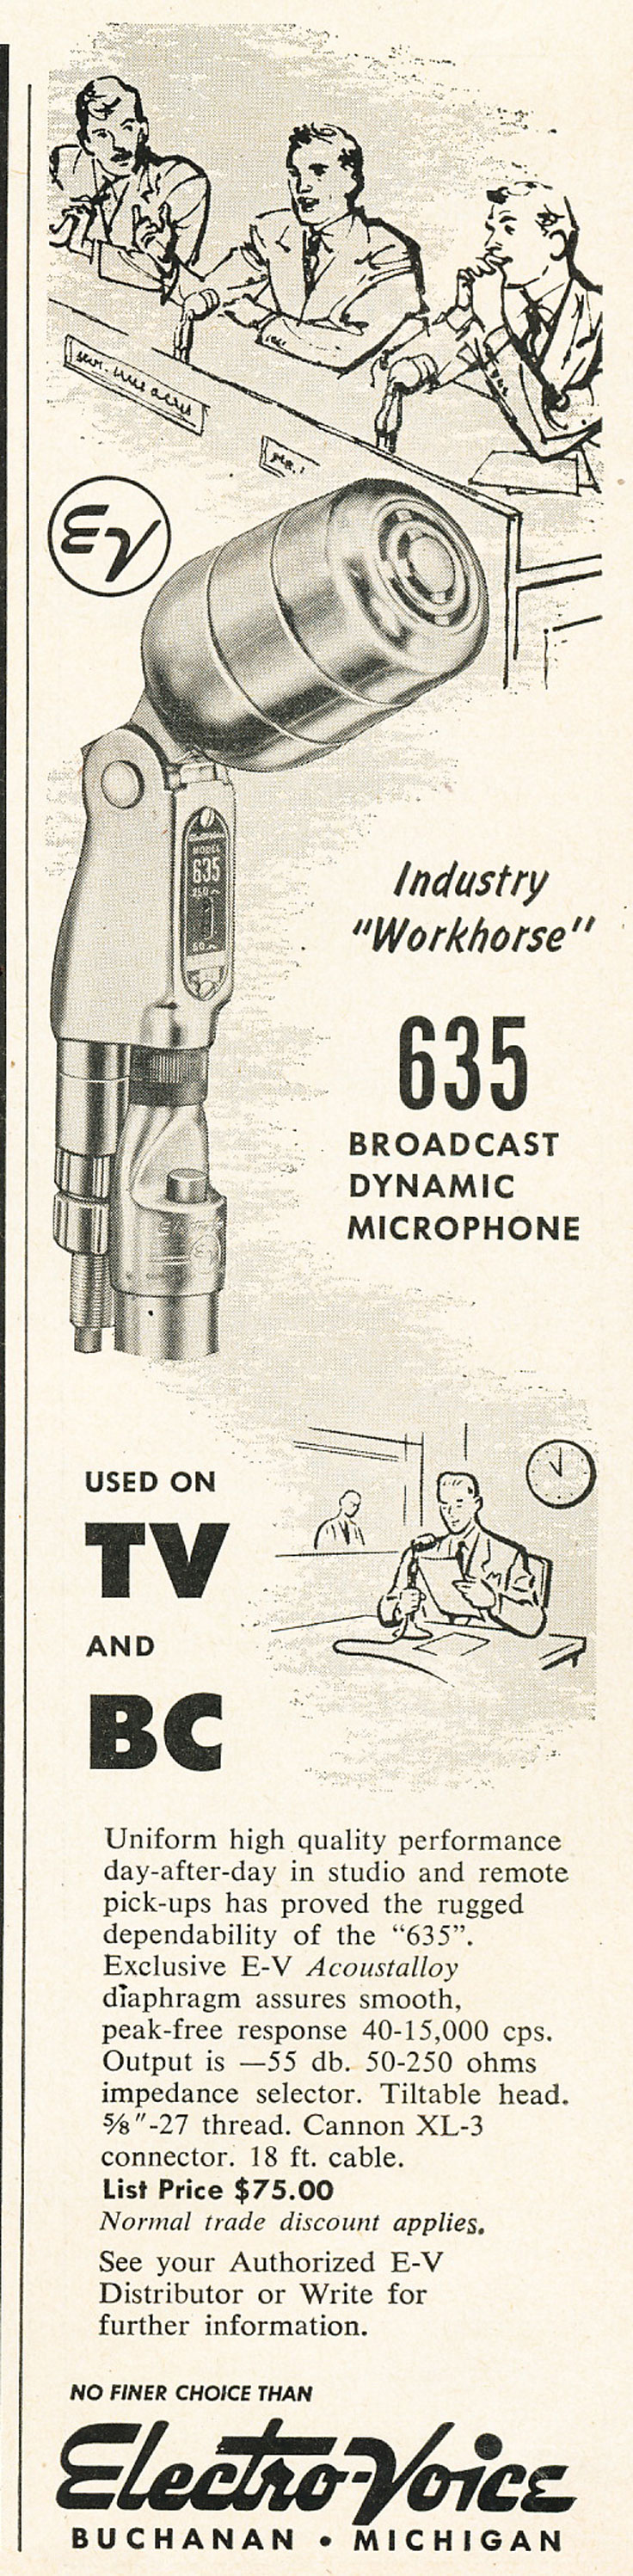 1954 ad for the Electro Voive 635 microphone in Reel2ReelTexas.com's vintage recording collection